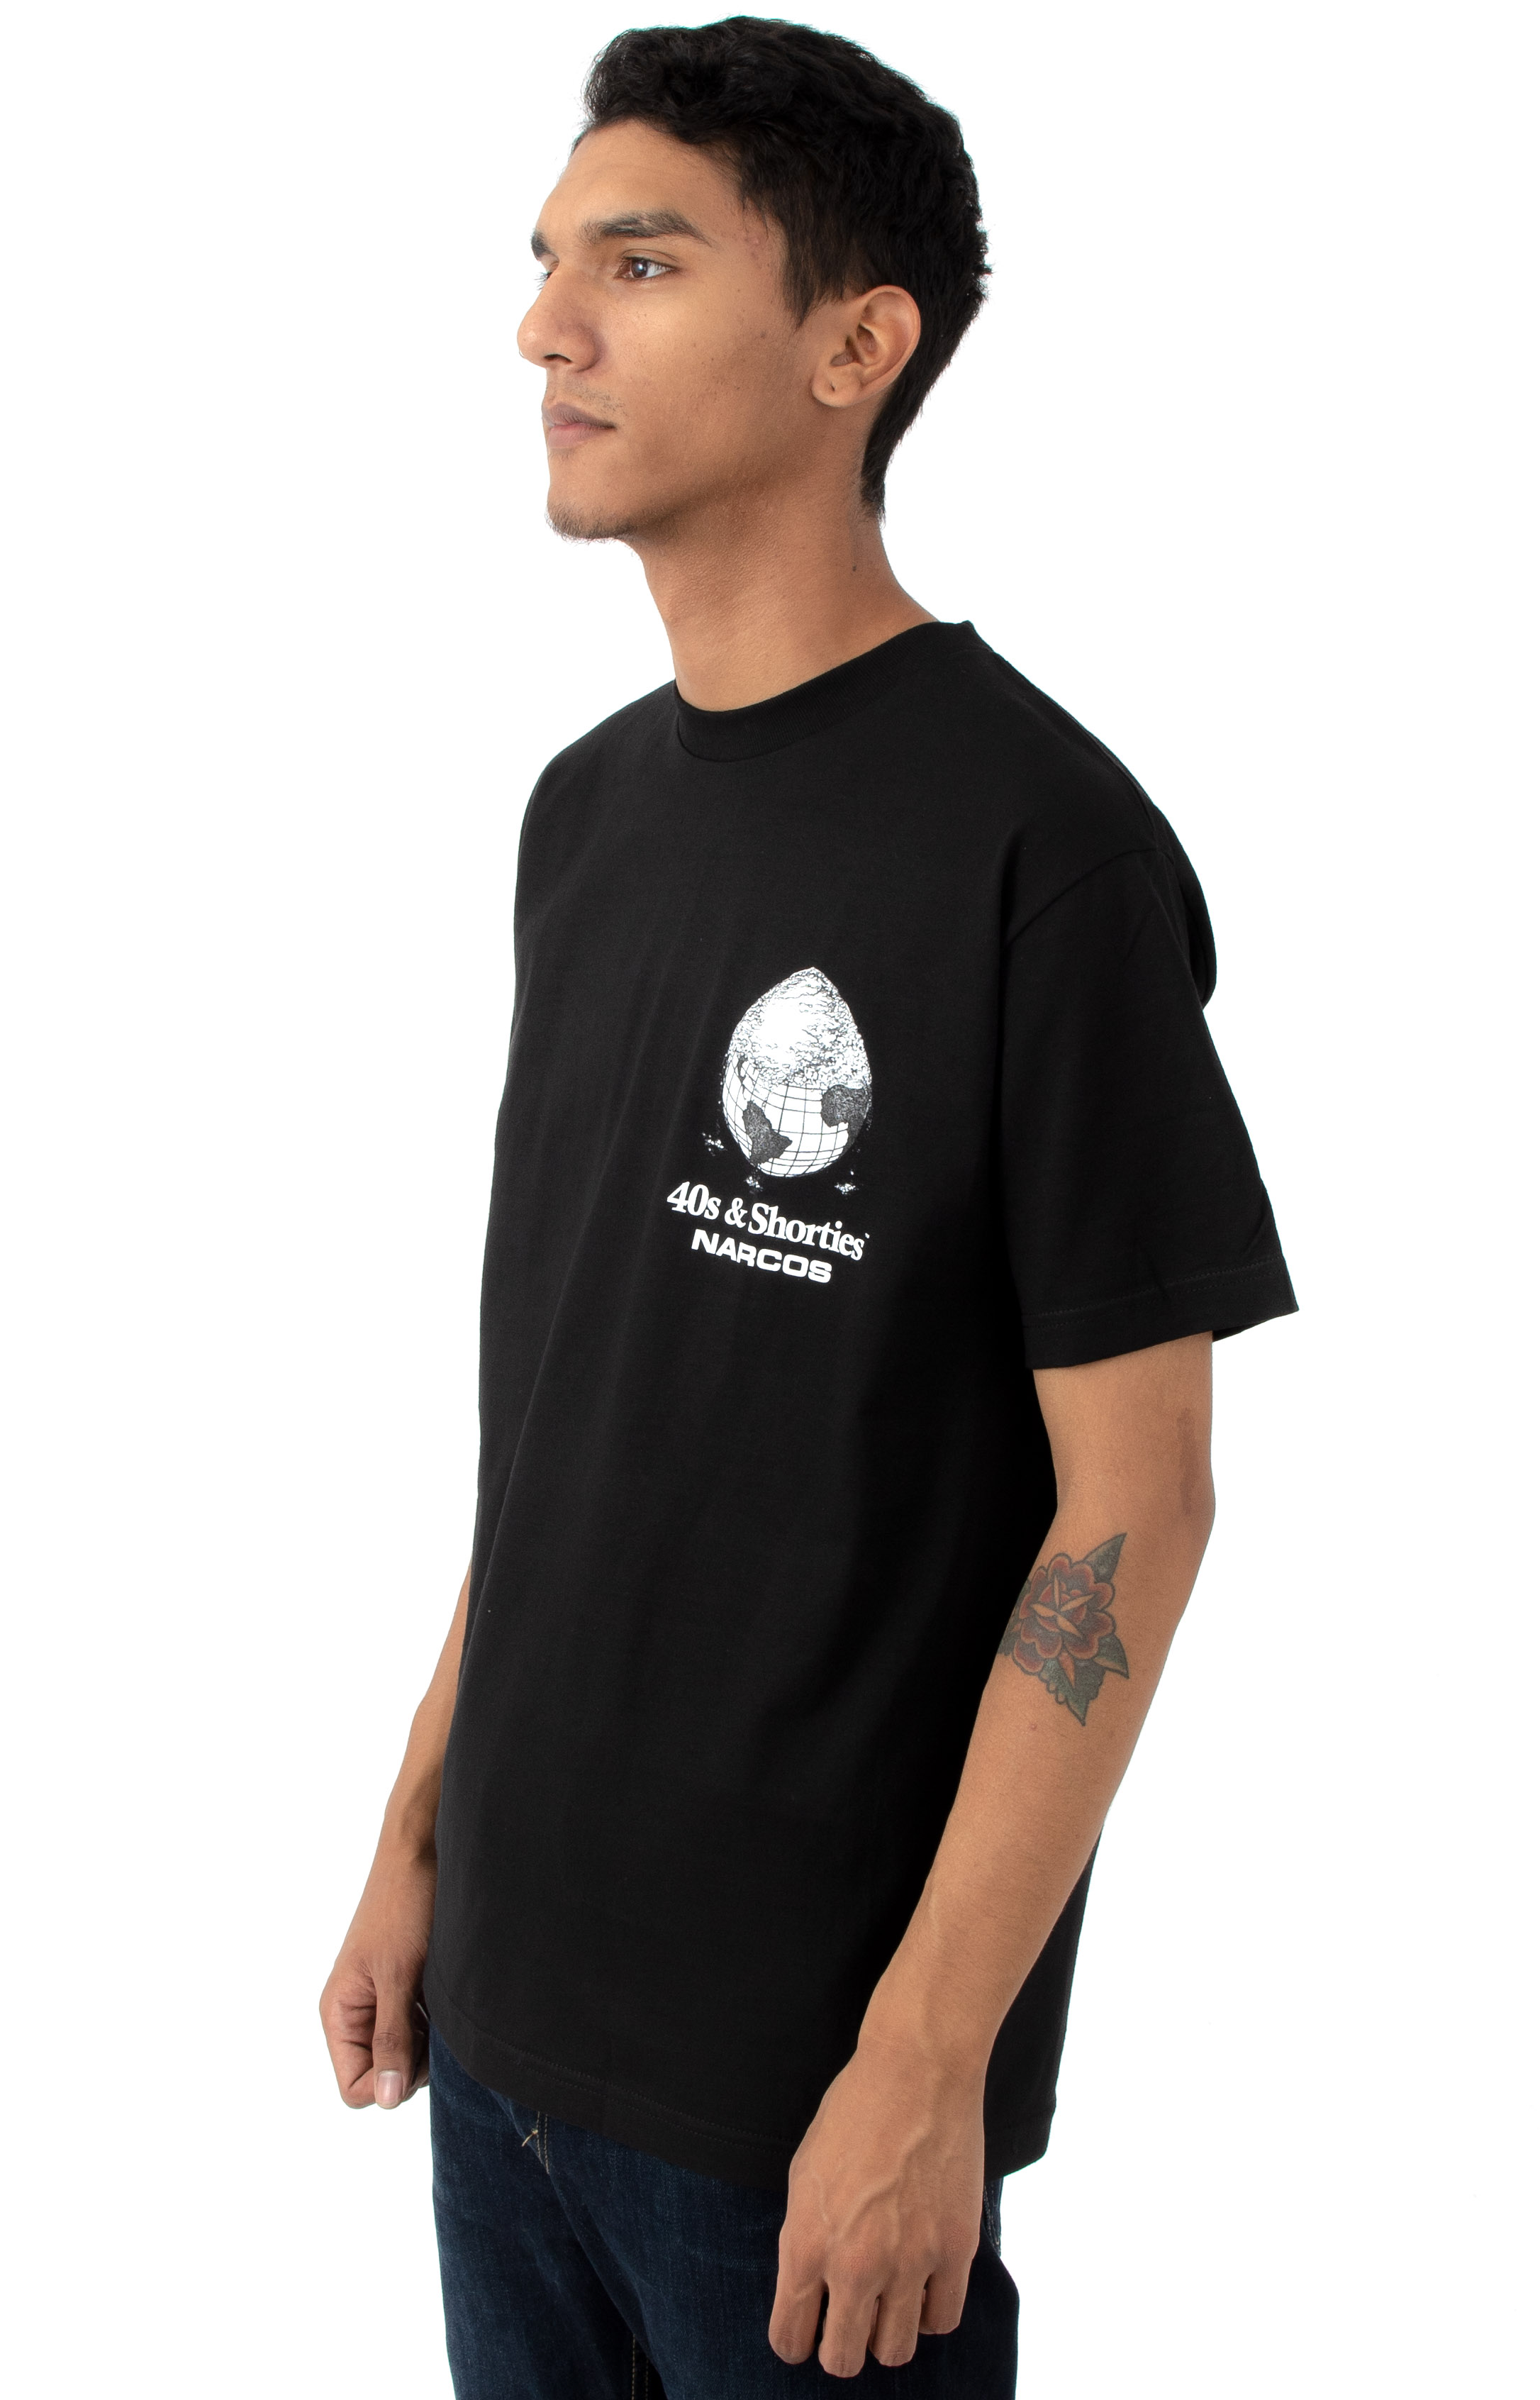 Cover The Earth T-Shirt - Black 3